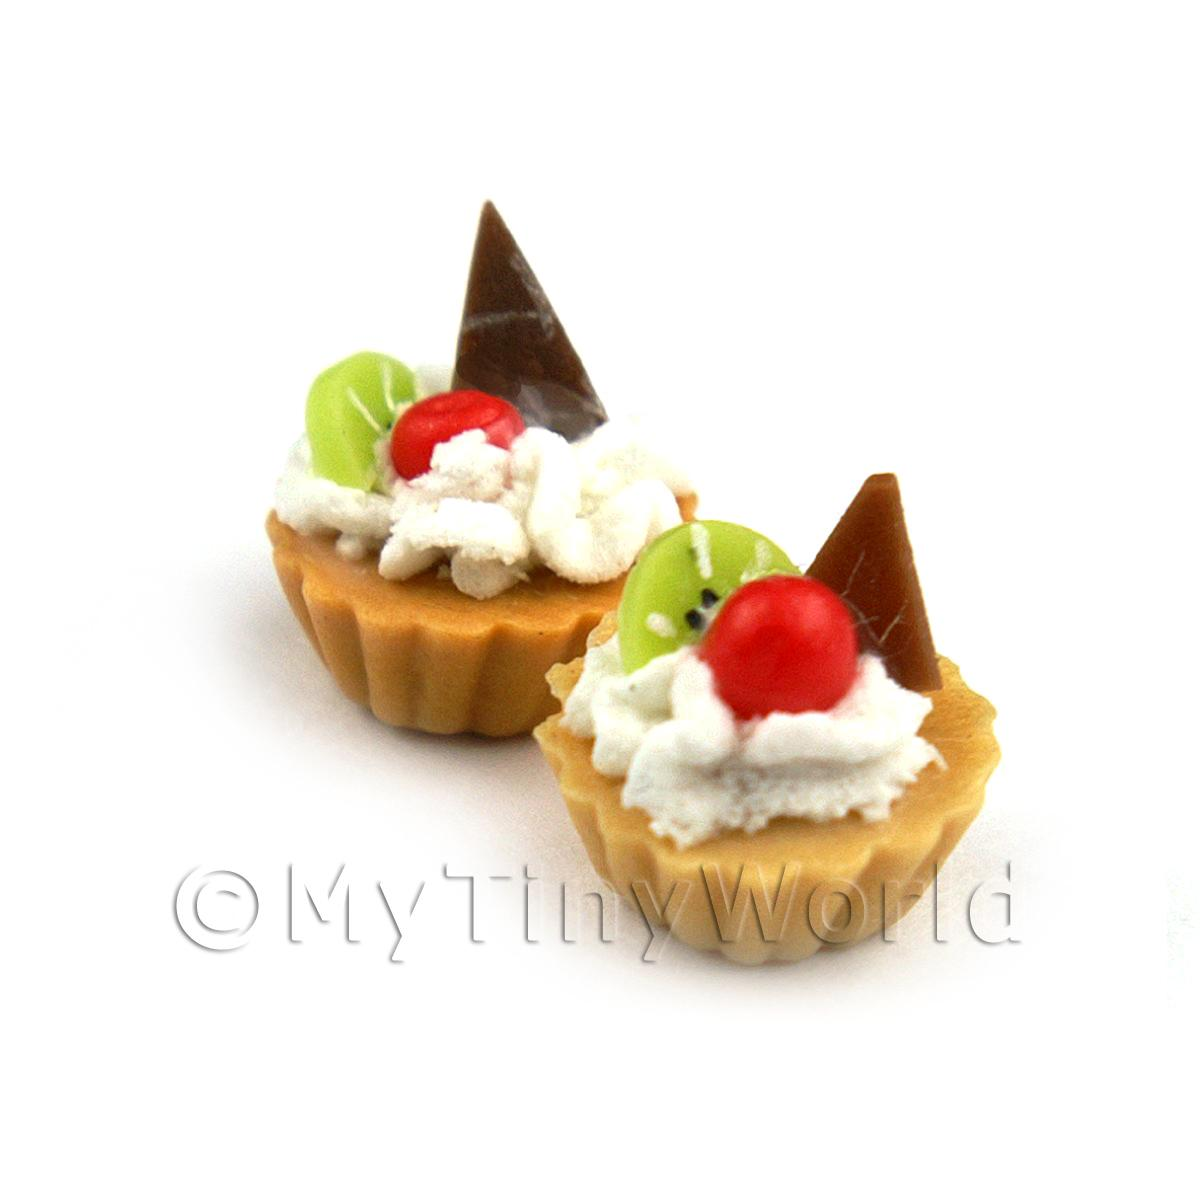 Dolls House Miniature Loose Handmade Chocolate Kiwi Tart